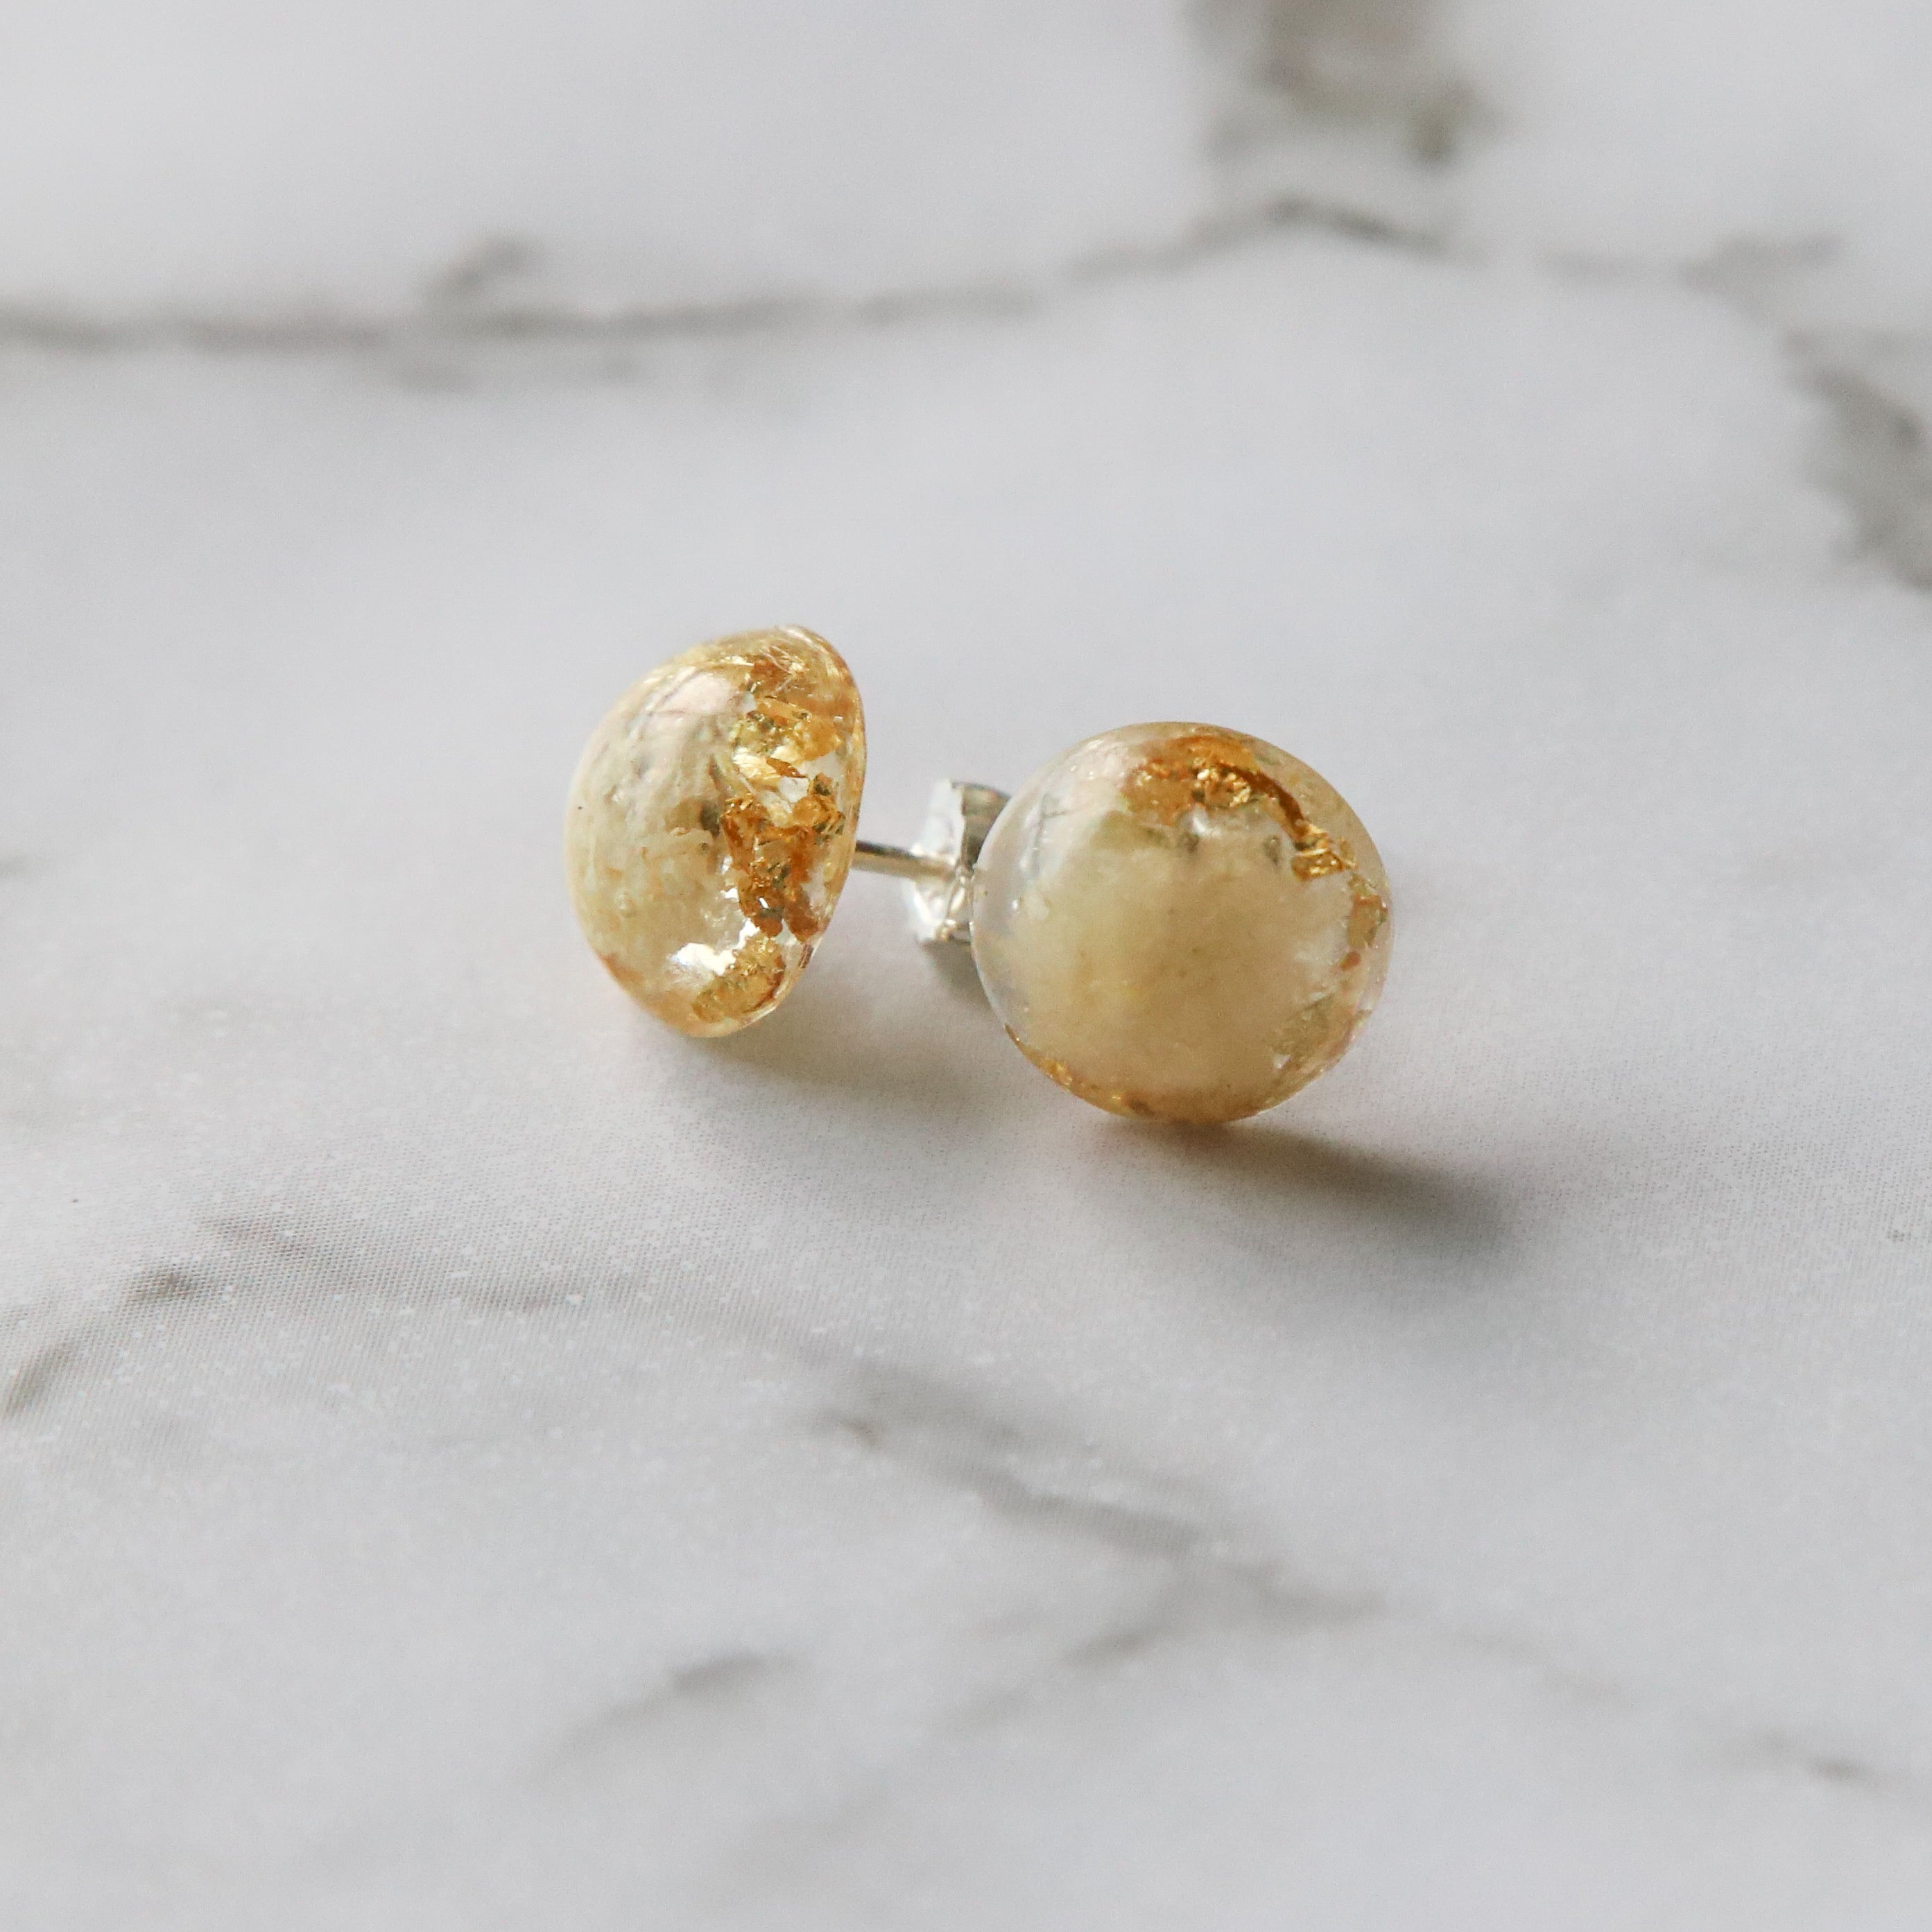 Ivy | Floral dome stud earrings